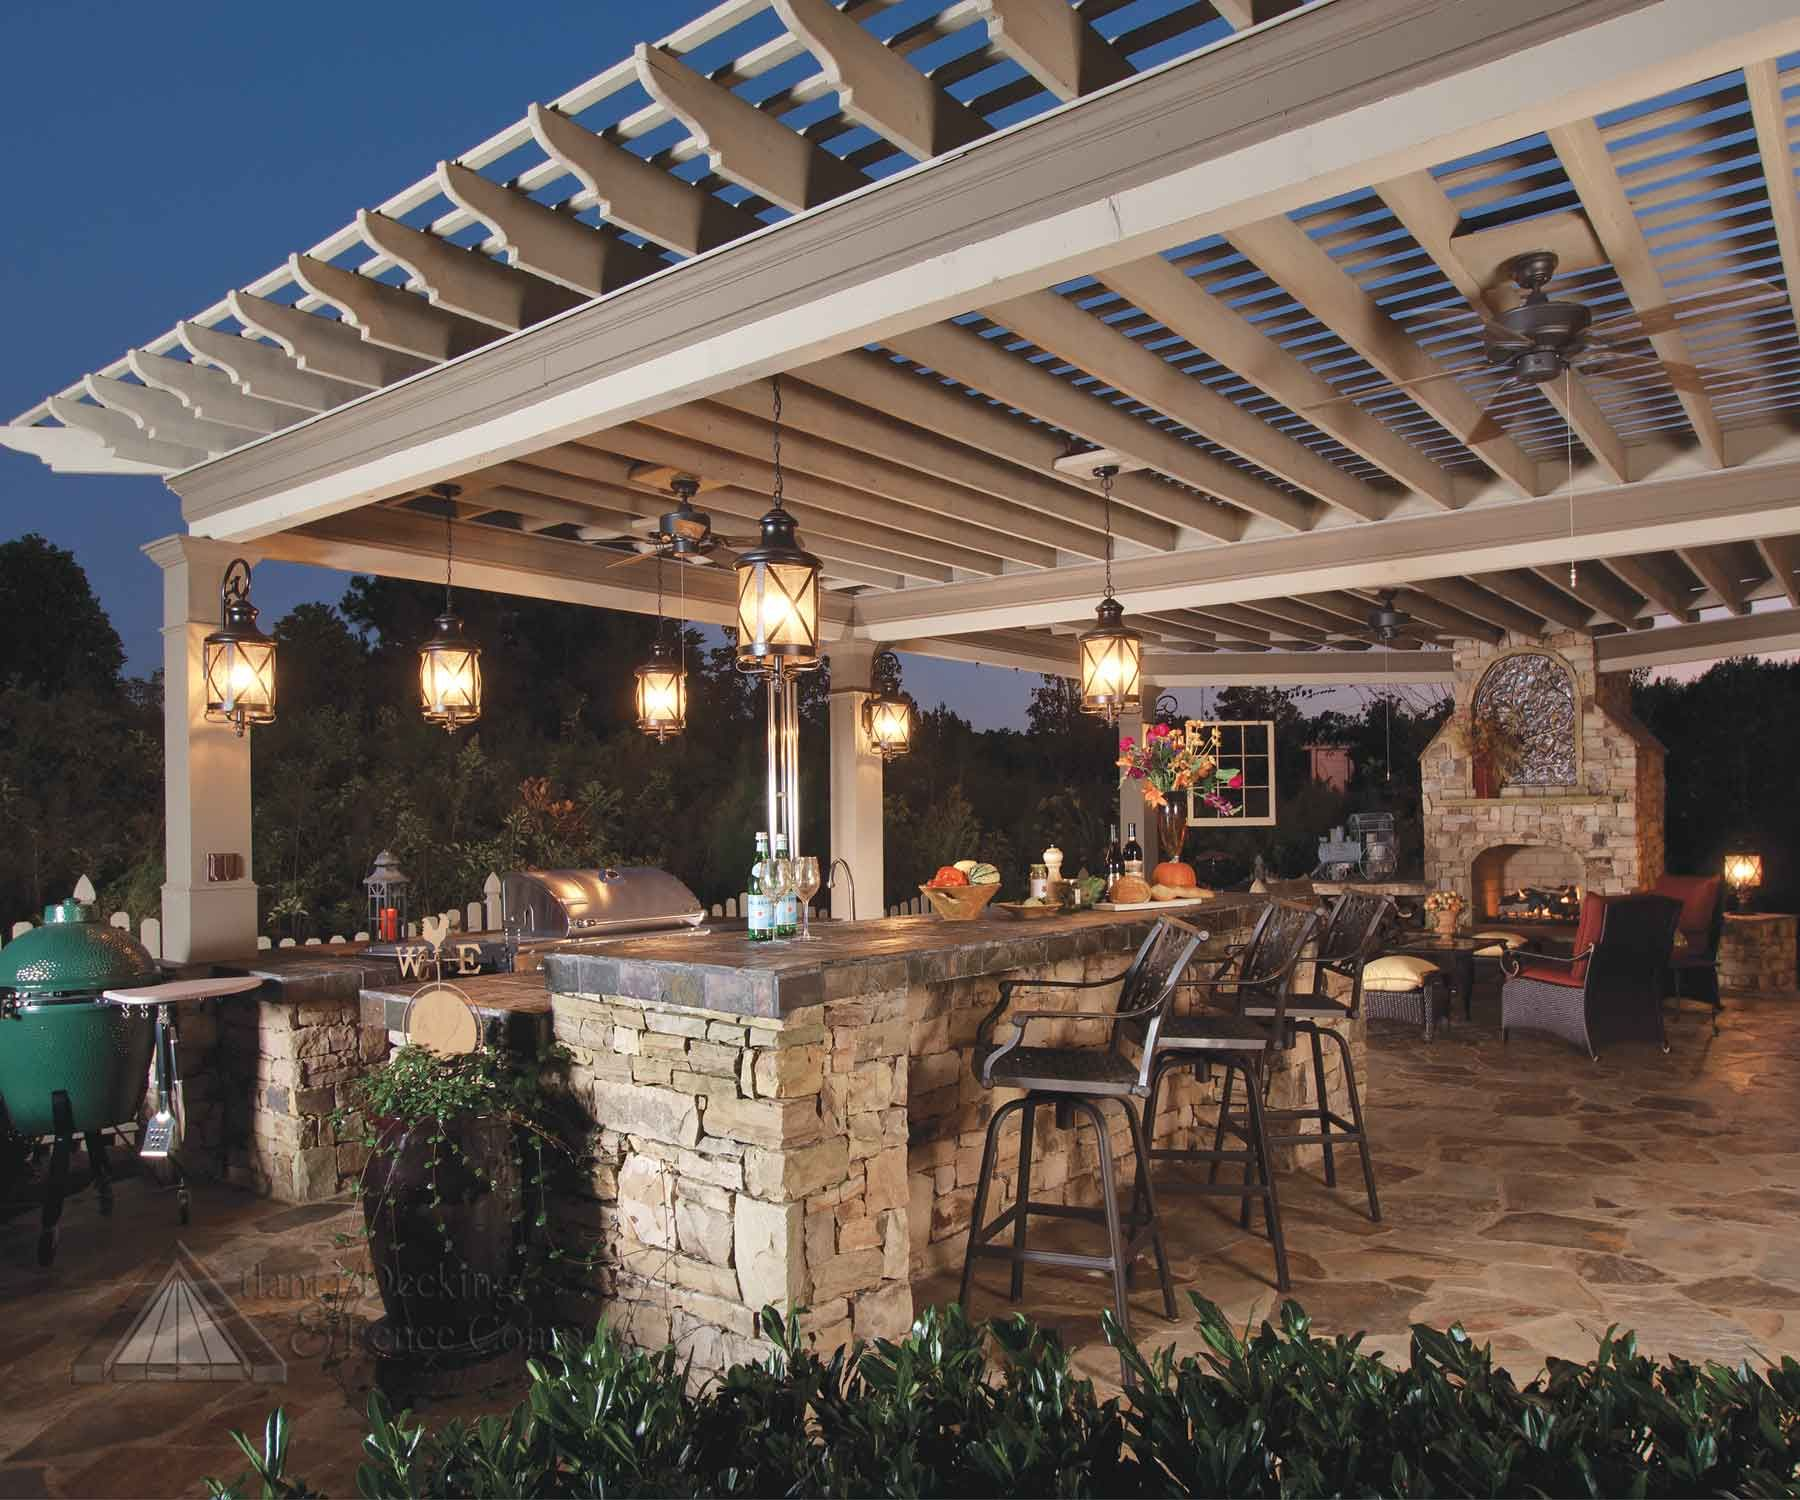 outdoor kitchen pergola modern pinterest amazing outdoor kitchens pergola lighting with lights outdoor pendant solar chandelier 25 kitchen designs that will light up your grill fabulous